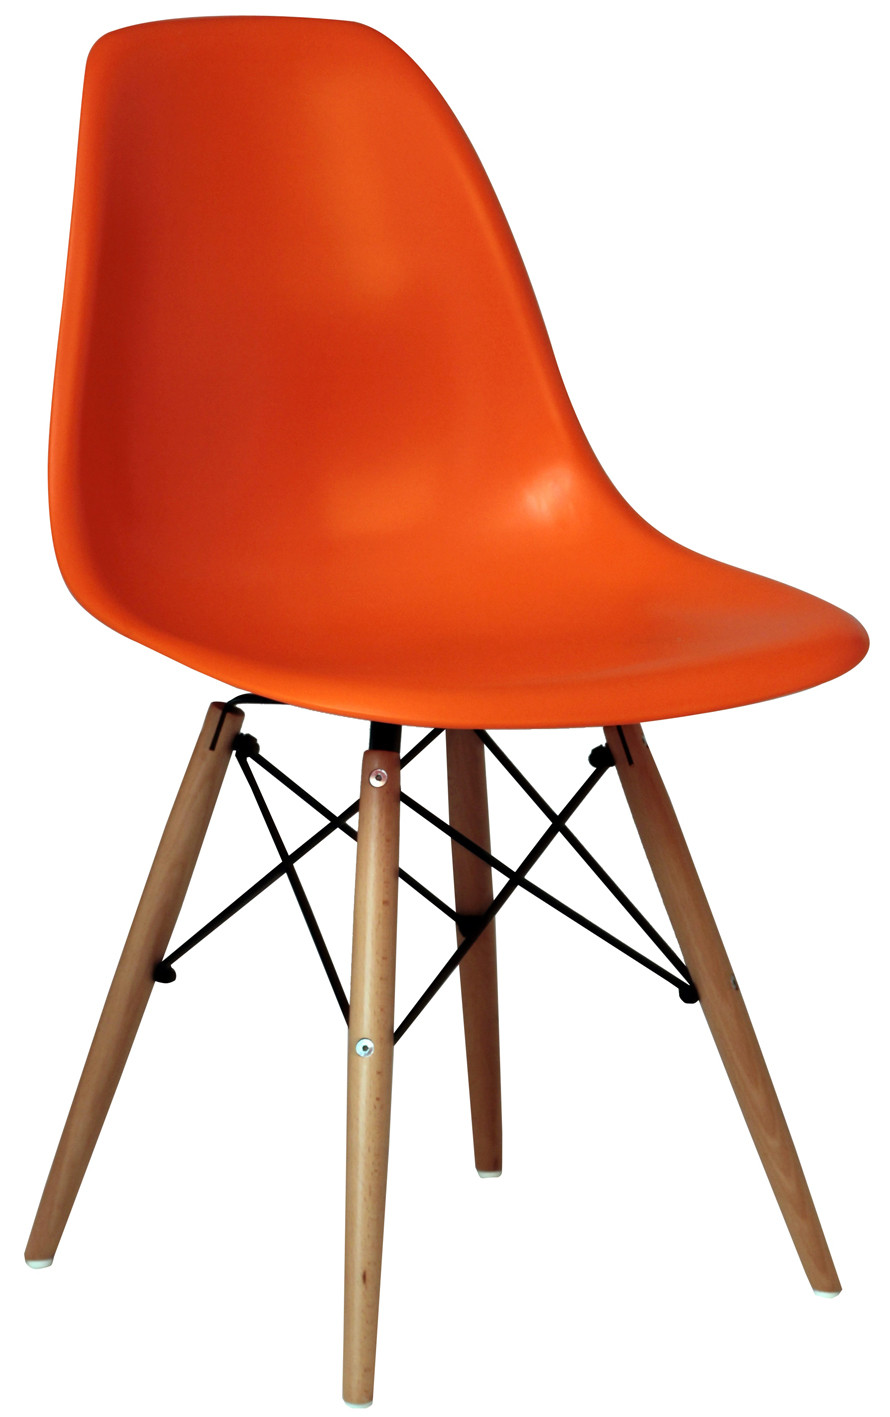 Modern Chair Polypropylene Seat and Beech Wood Legs Eiffel Replica